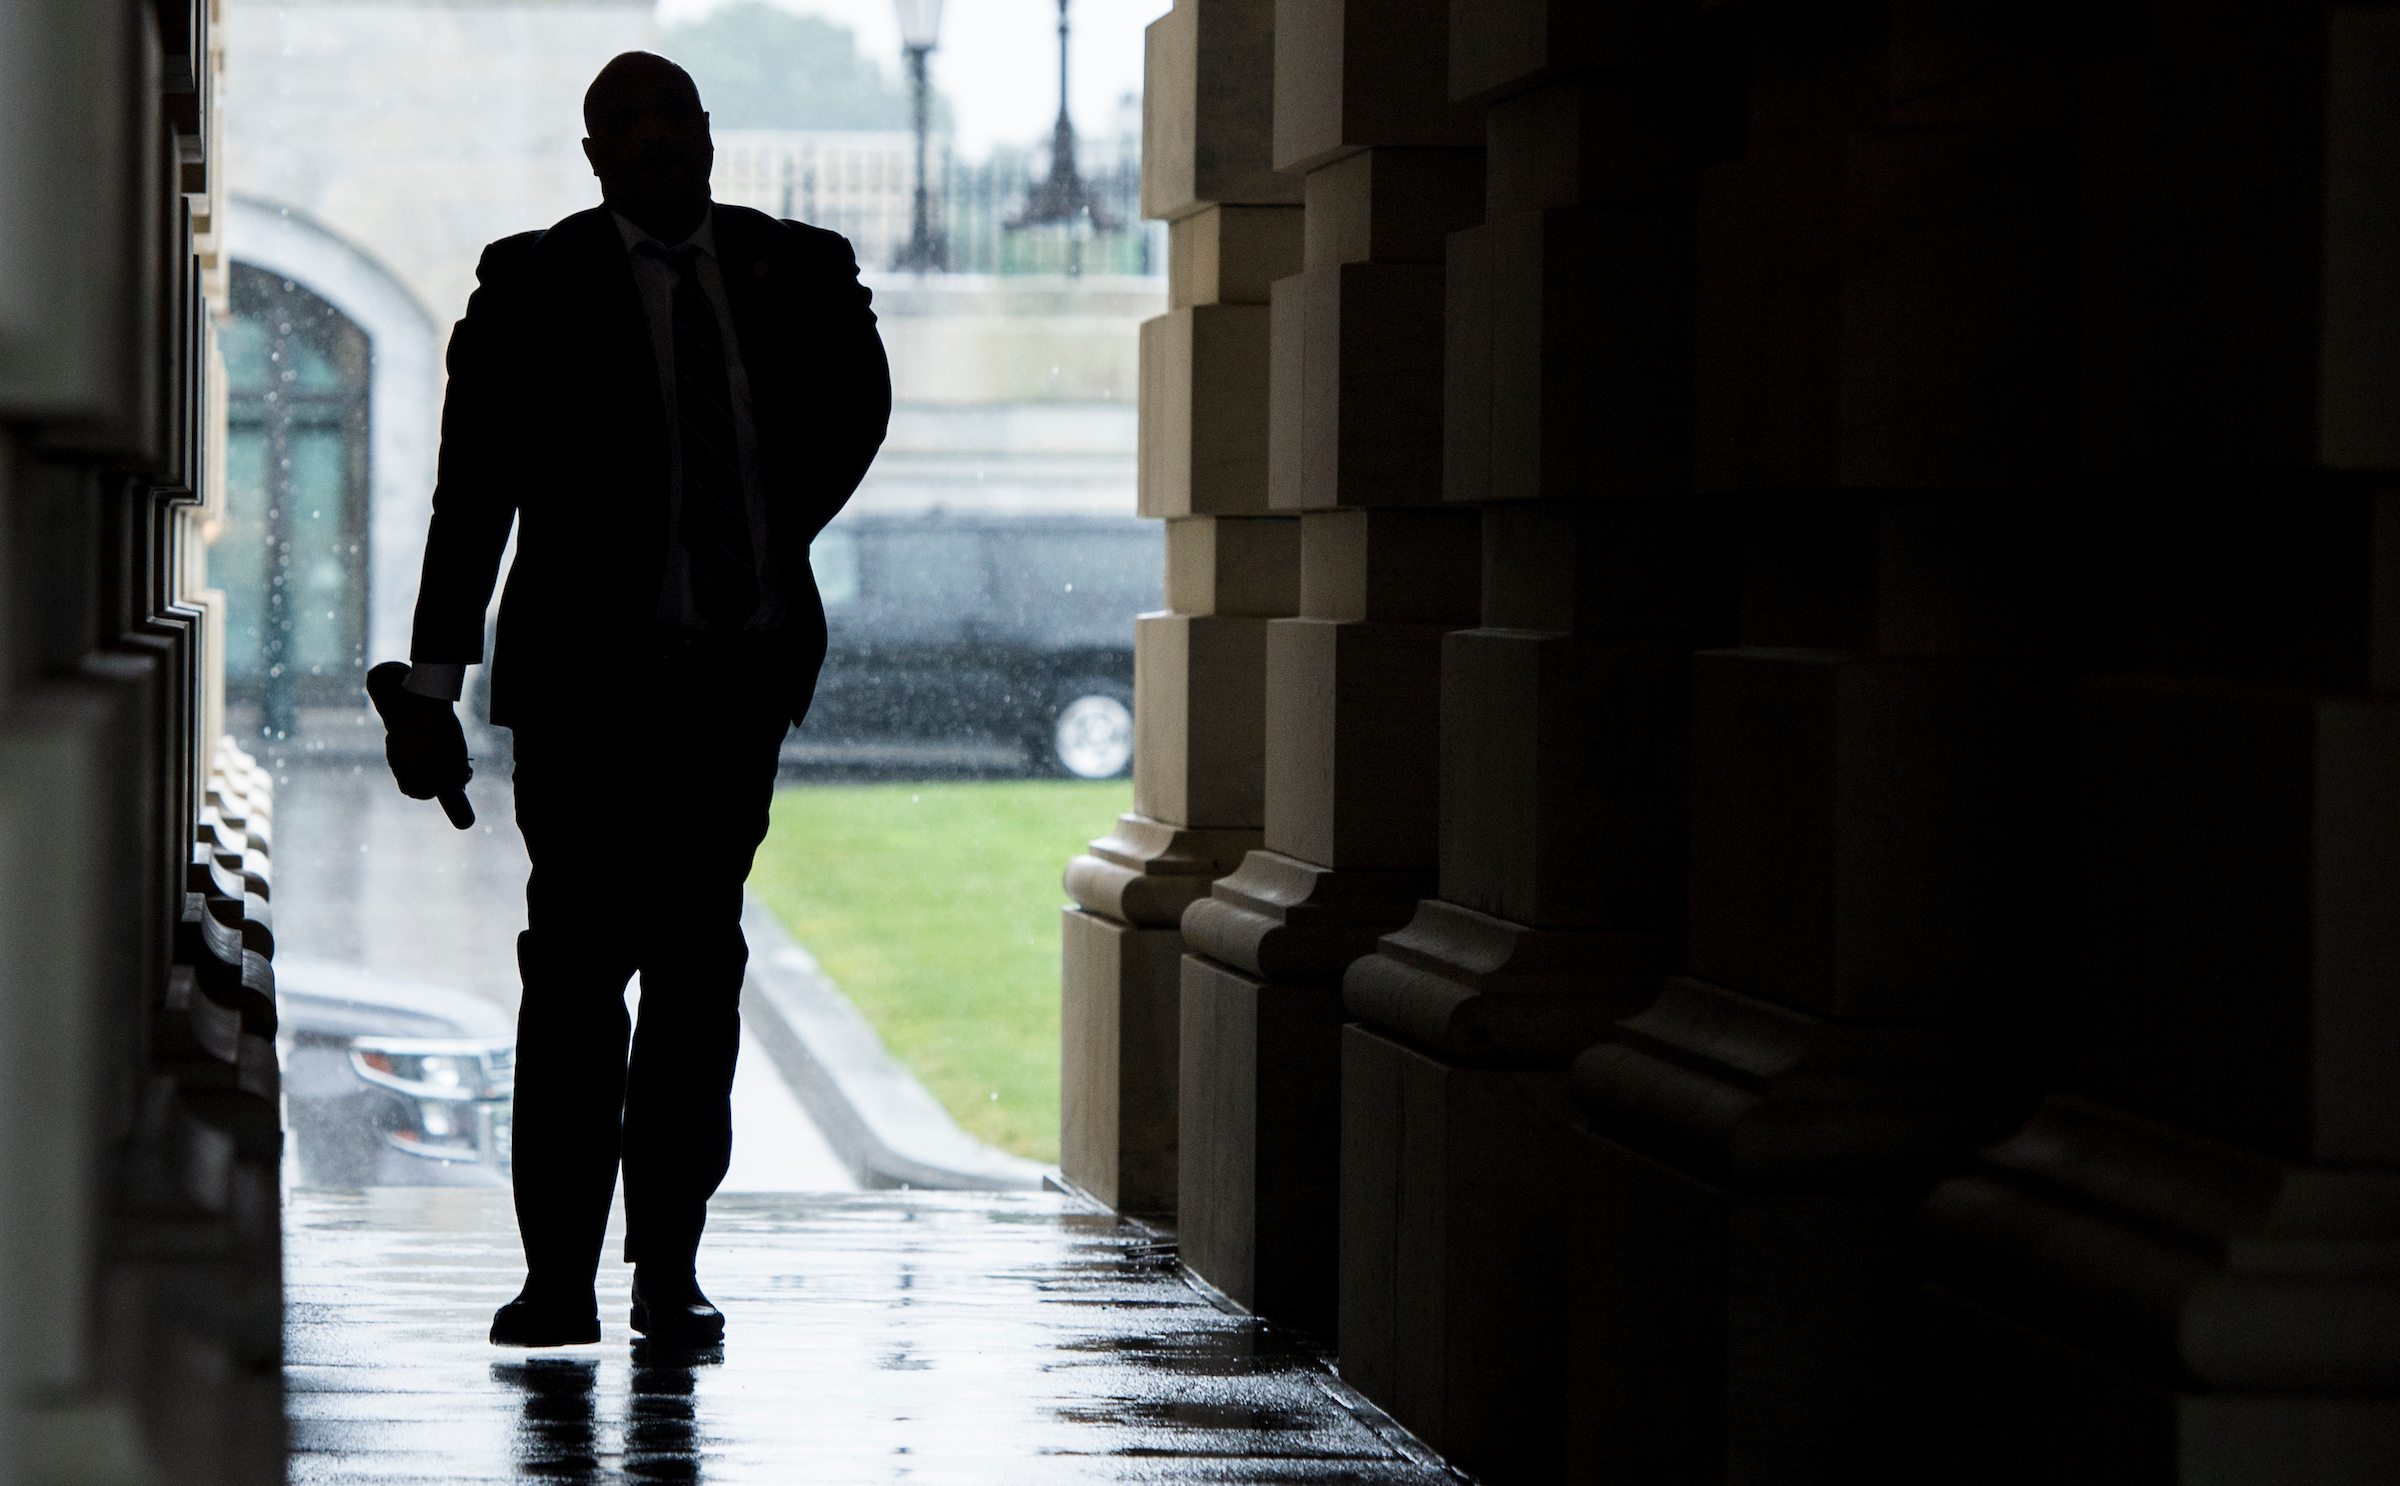 UNITED STATES - JULY 28: Rep. Andre Carson, D-Ind., walks to the covered carriage entrance of the Capitol during a rain storm for the final votes before Congress leaves town for their summer recess on Friday, July 28, 2017. (Photo By Bill Clark/CQ Roll Call)